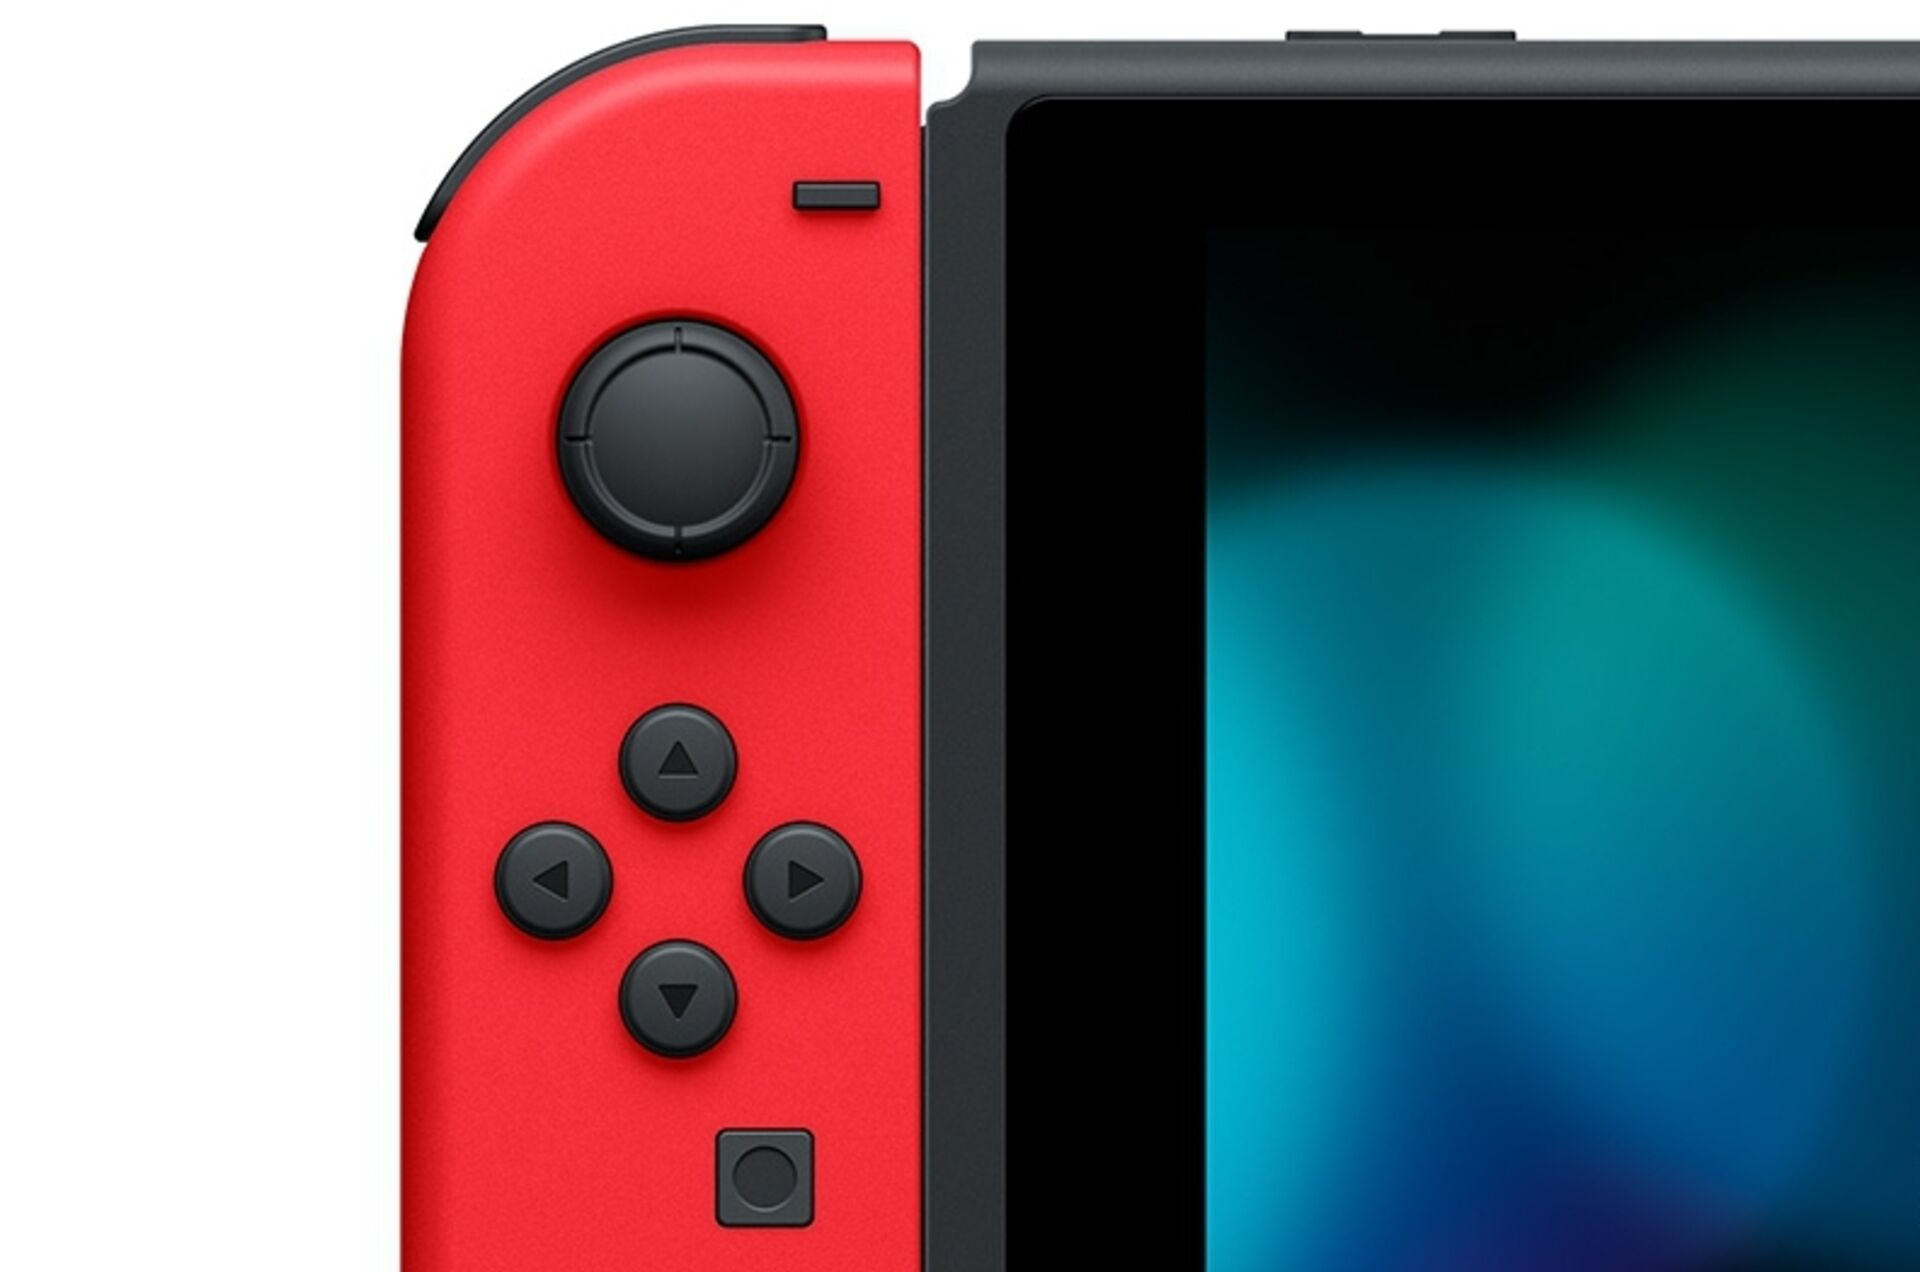 In Theory: Can a Switch hardware revision extend its lifespan